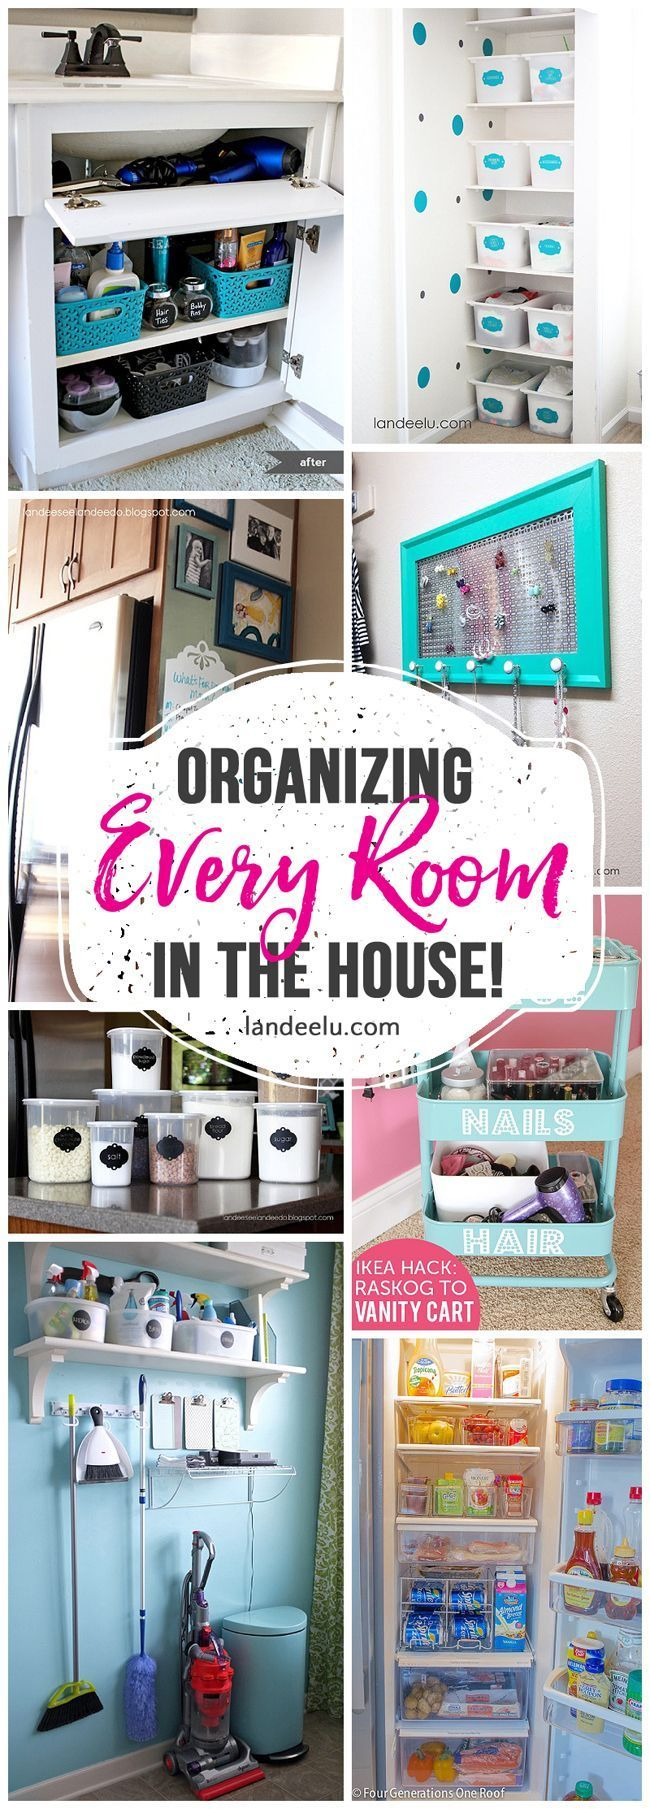 How to Organize Every Room in the House! Tons of great and inexpensive ideas to organize every nook and cranny of your house!